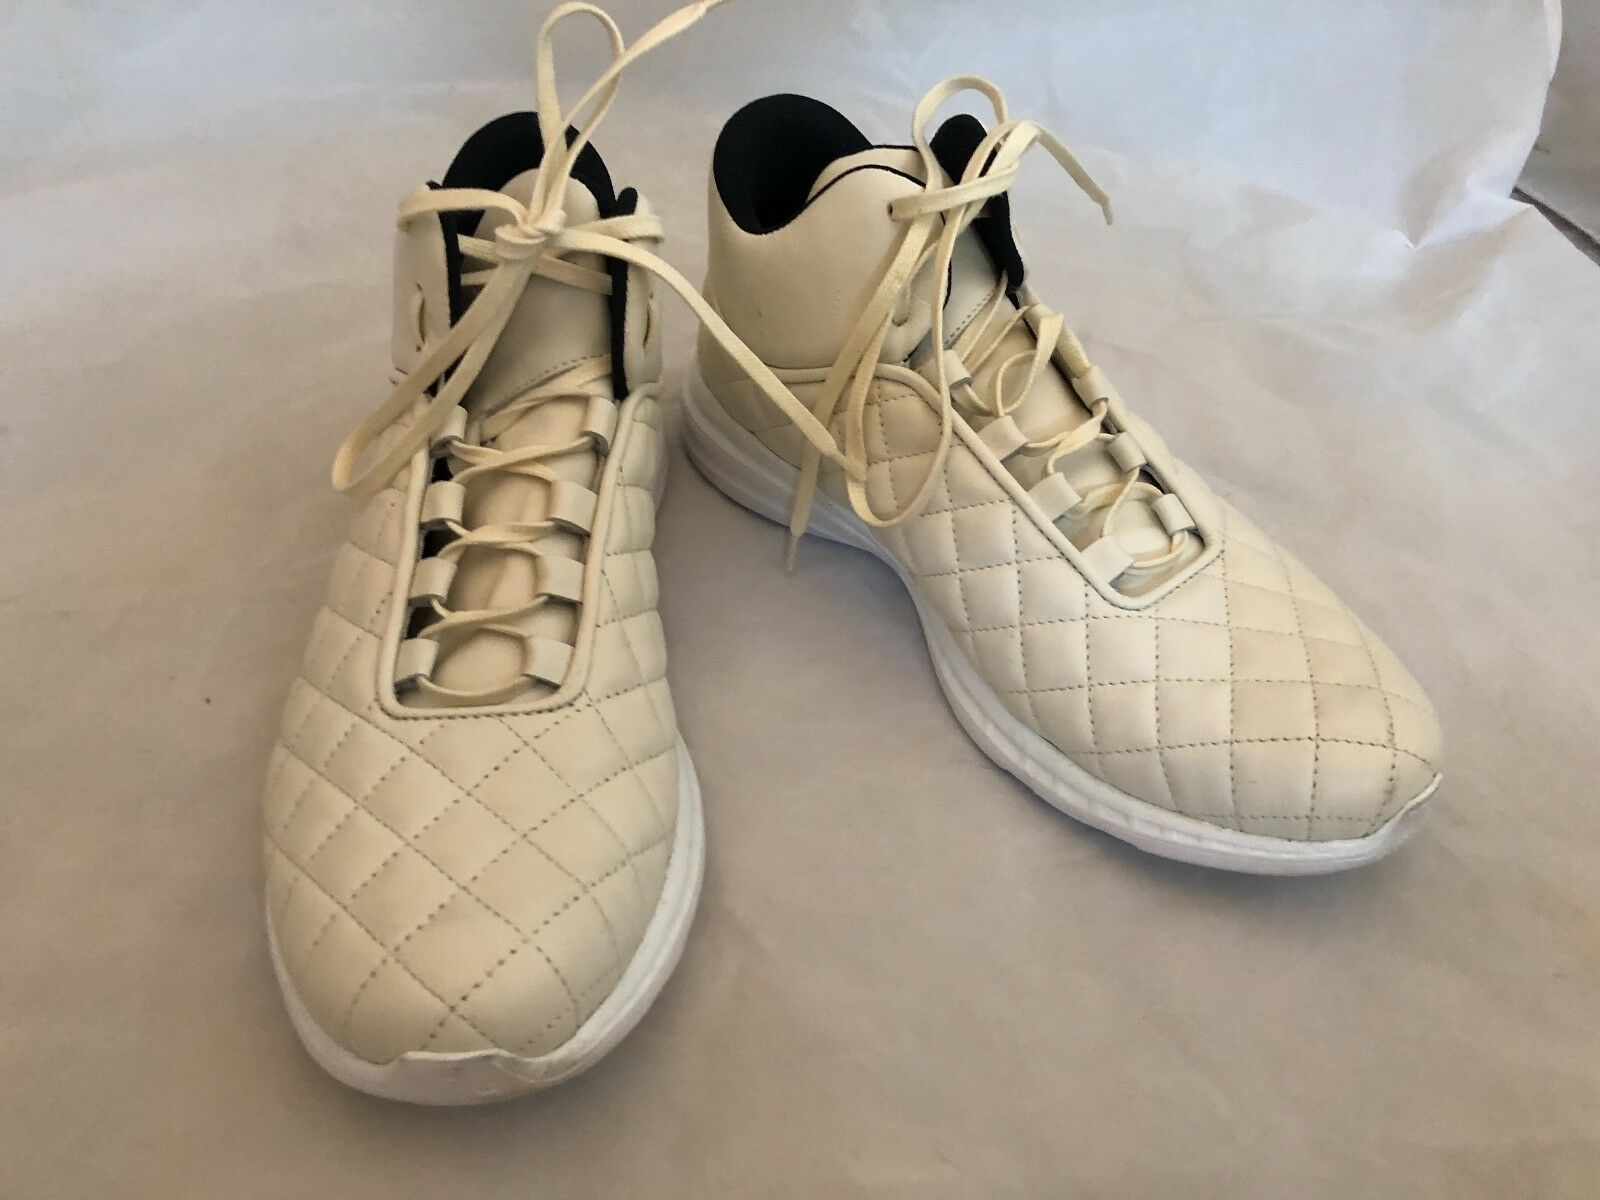 NWOB APL athletic propulsion labs  LUSSO off white & navy shoes sz. 7-  HTF